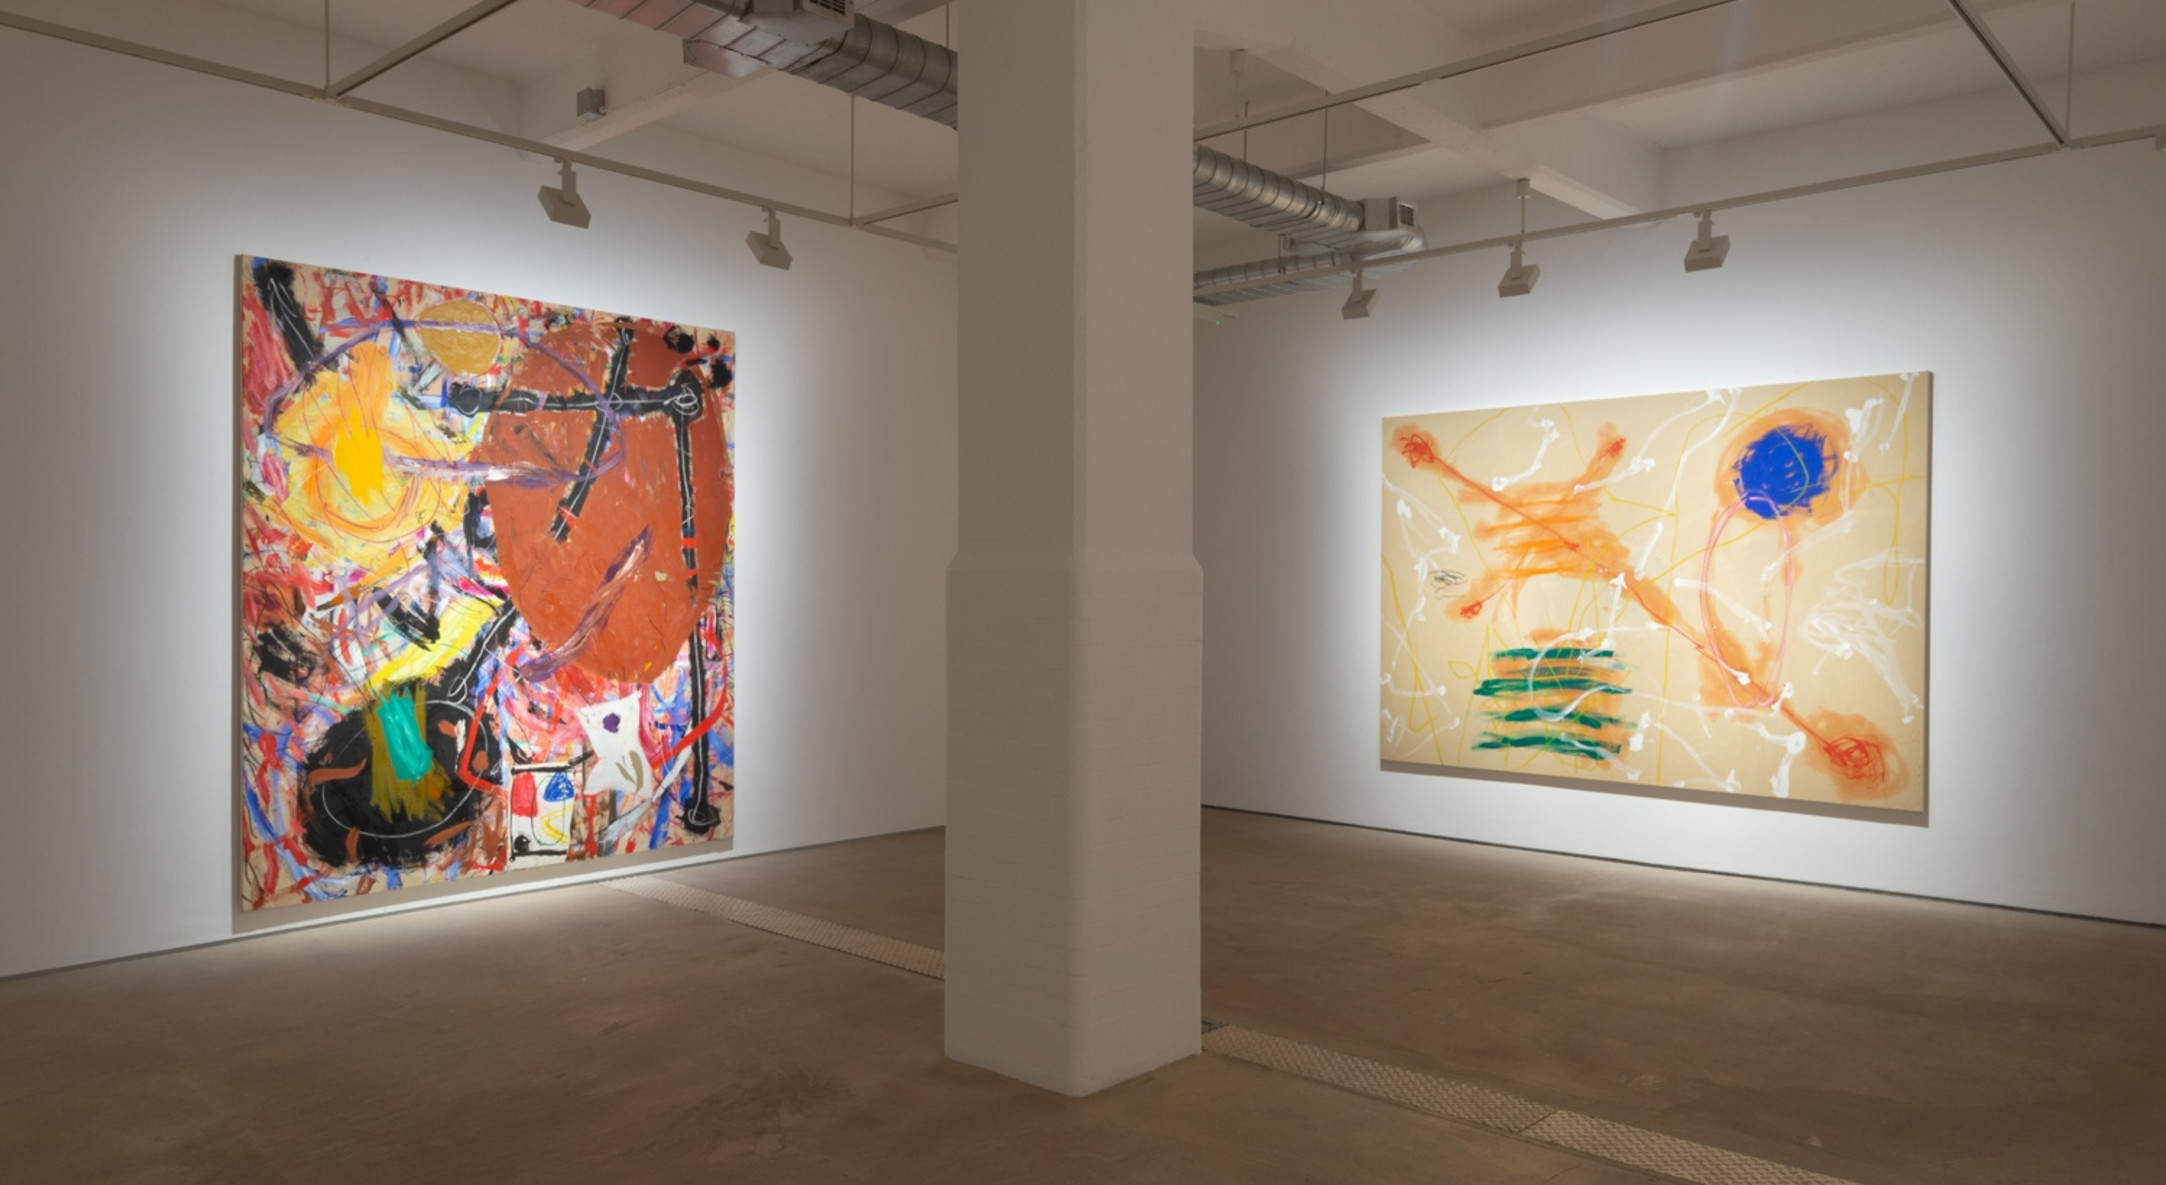 Installation view of Basil Beattie Cause & Effect, Hales London, 2020